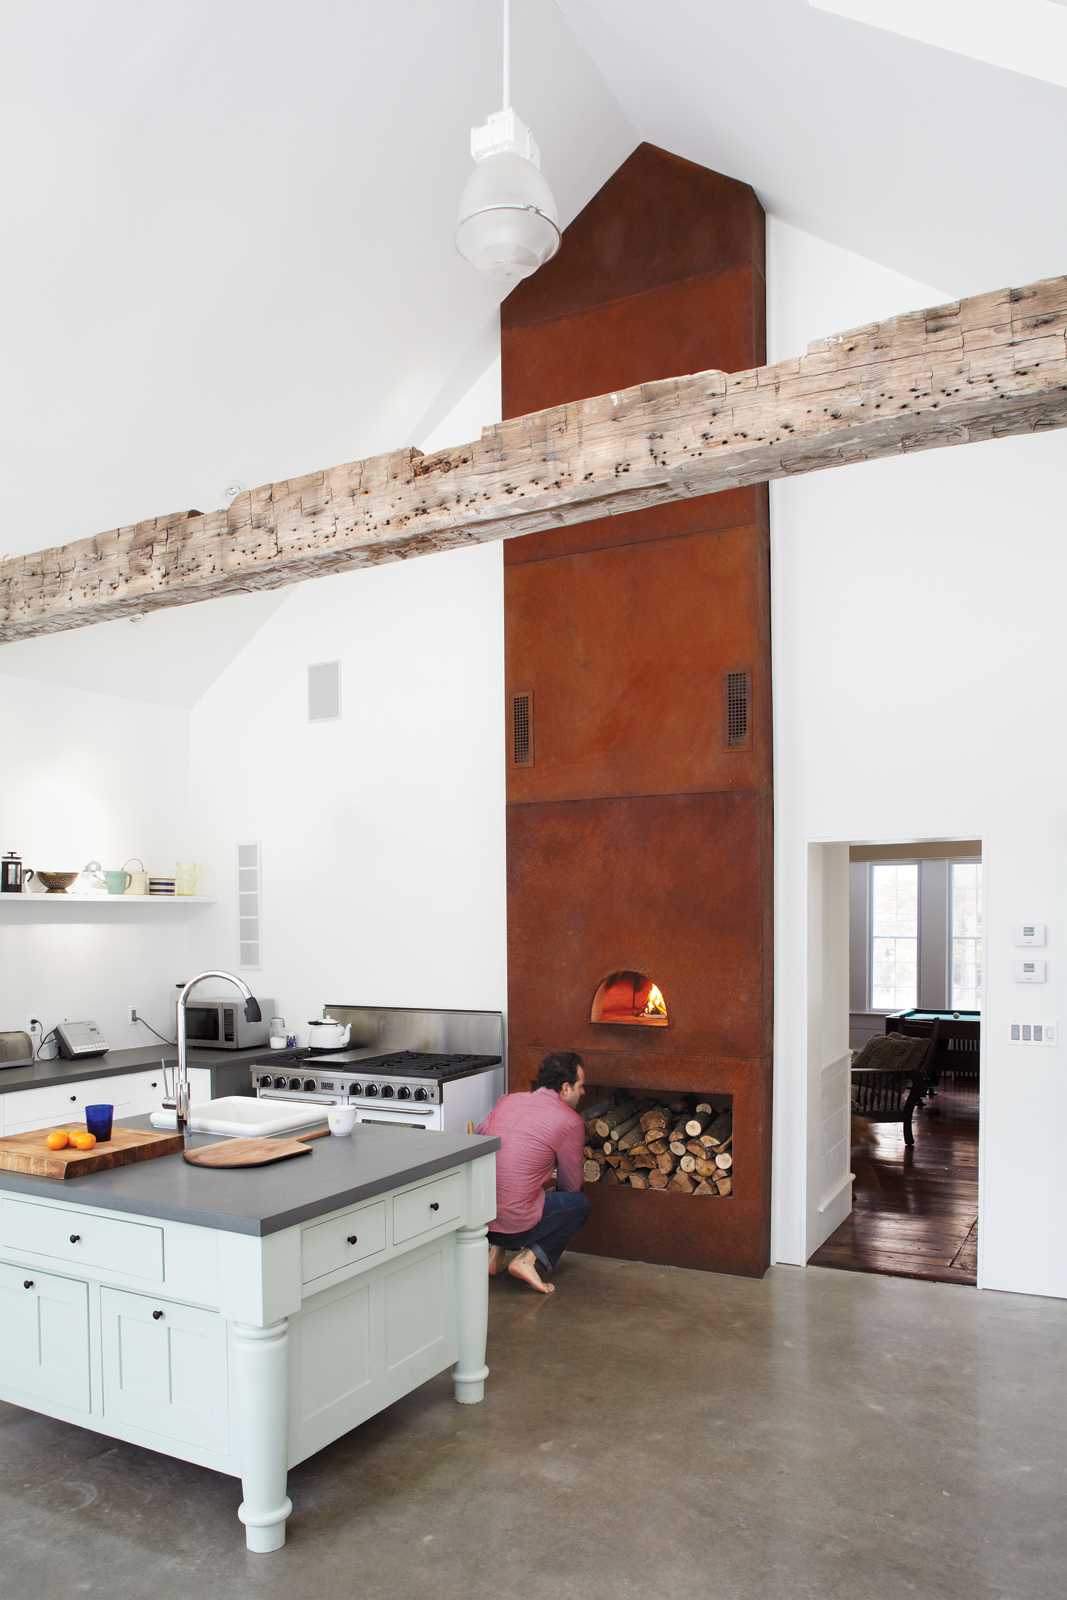 floating farmhouse kitchen pitched roof wood-fired oven